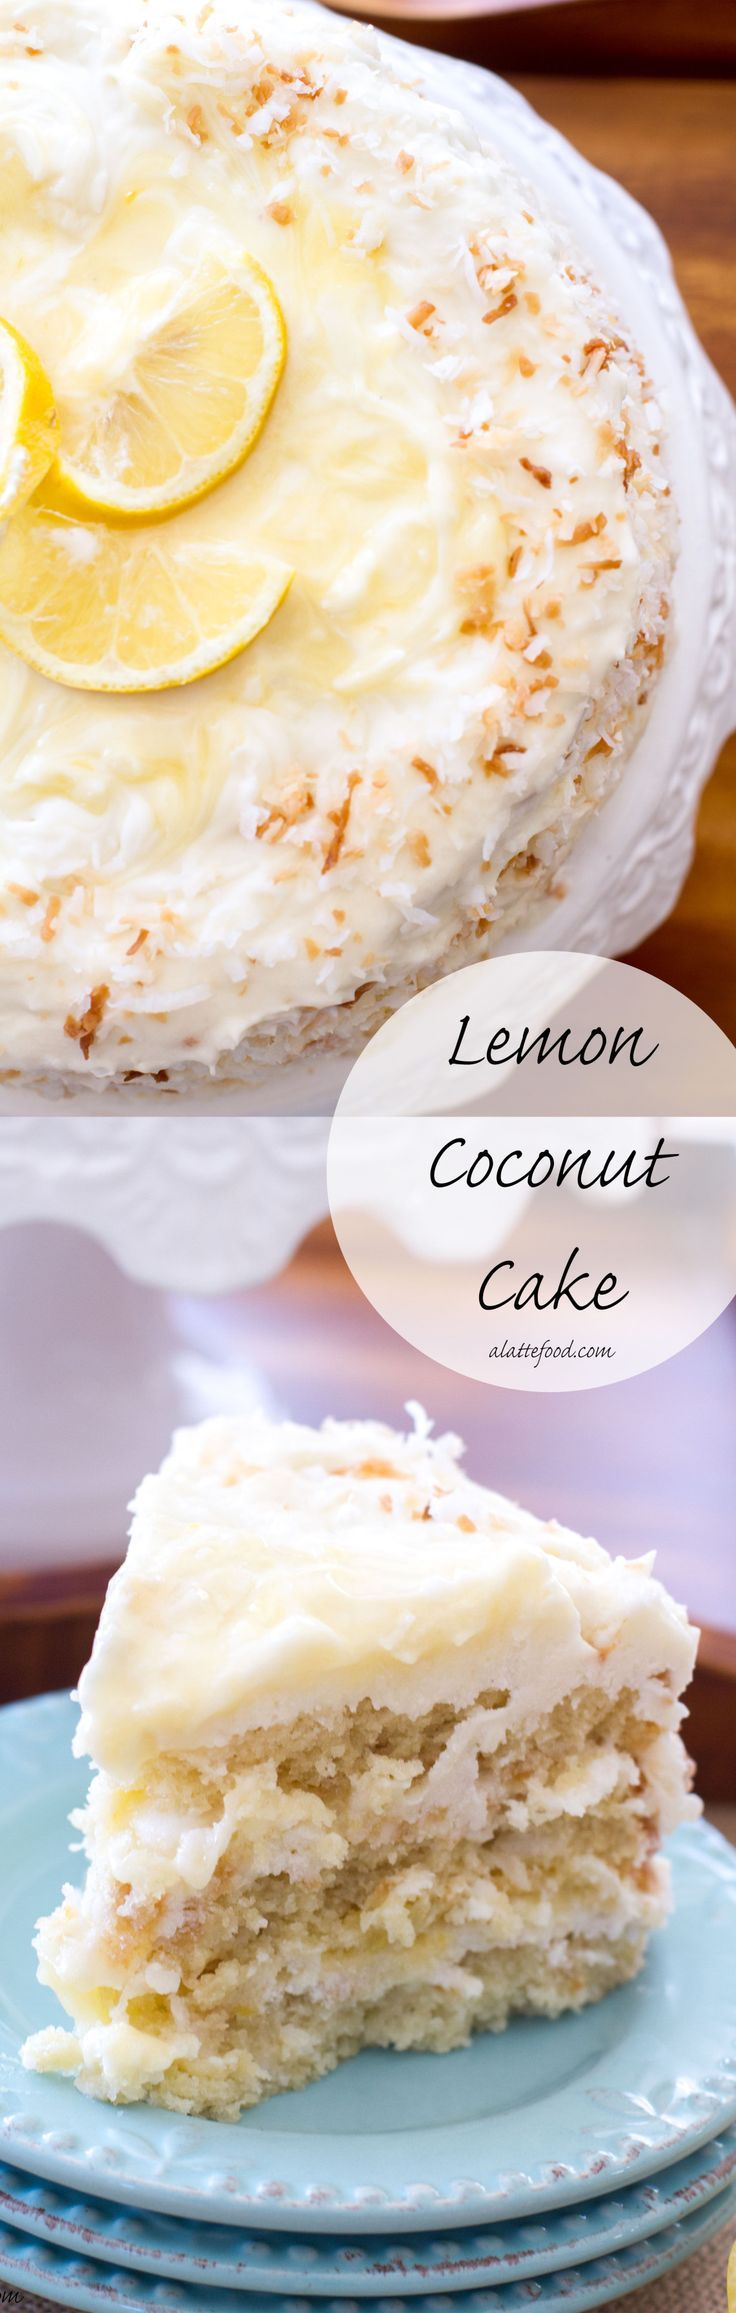 This classic coconut cake is filled lemon curd and topped with a lemon cream cheese frosting! | www.alattefood.com